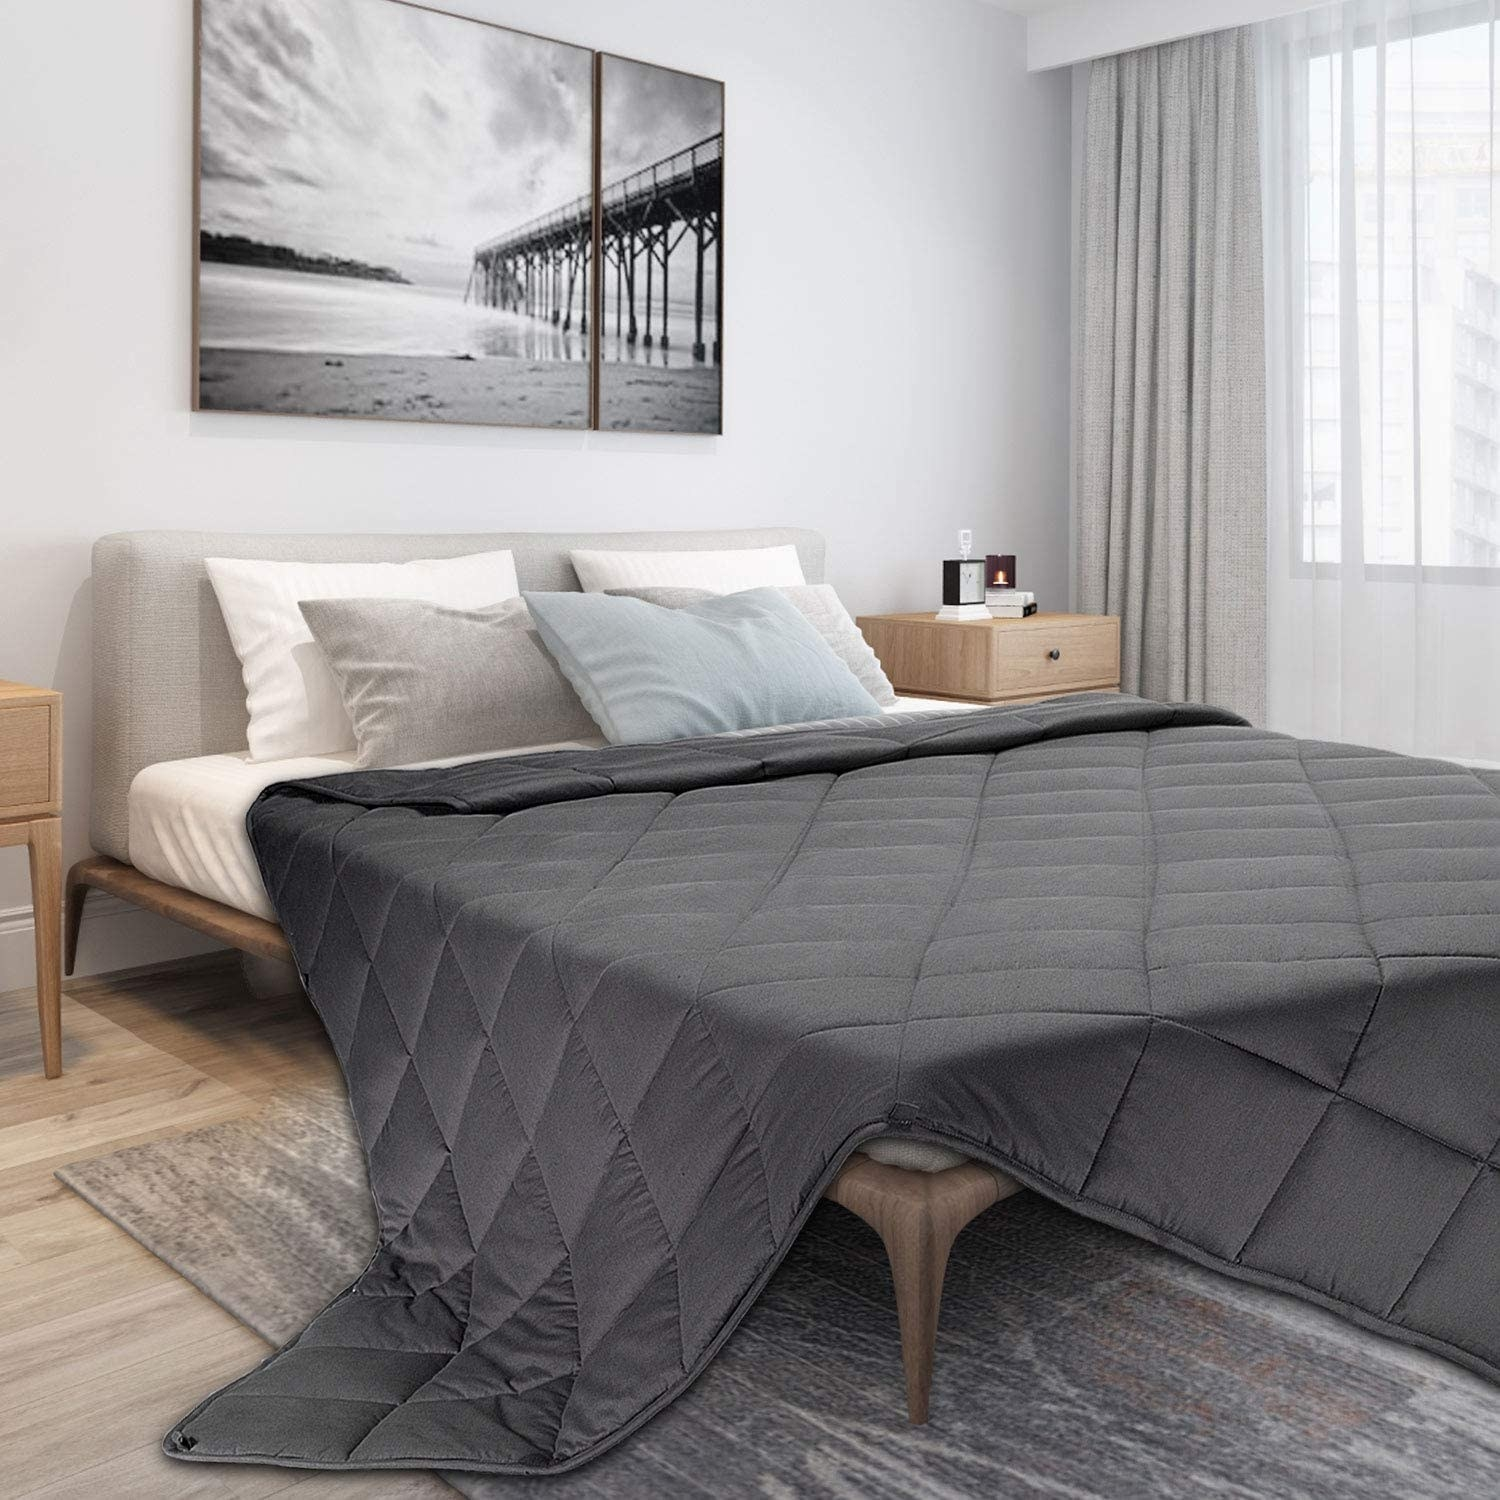 The weighted blanket on a bed